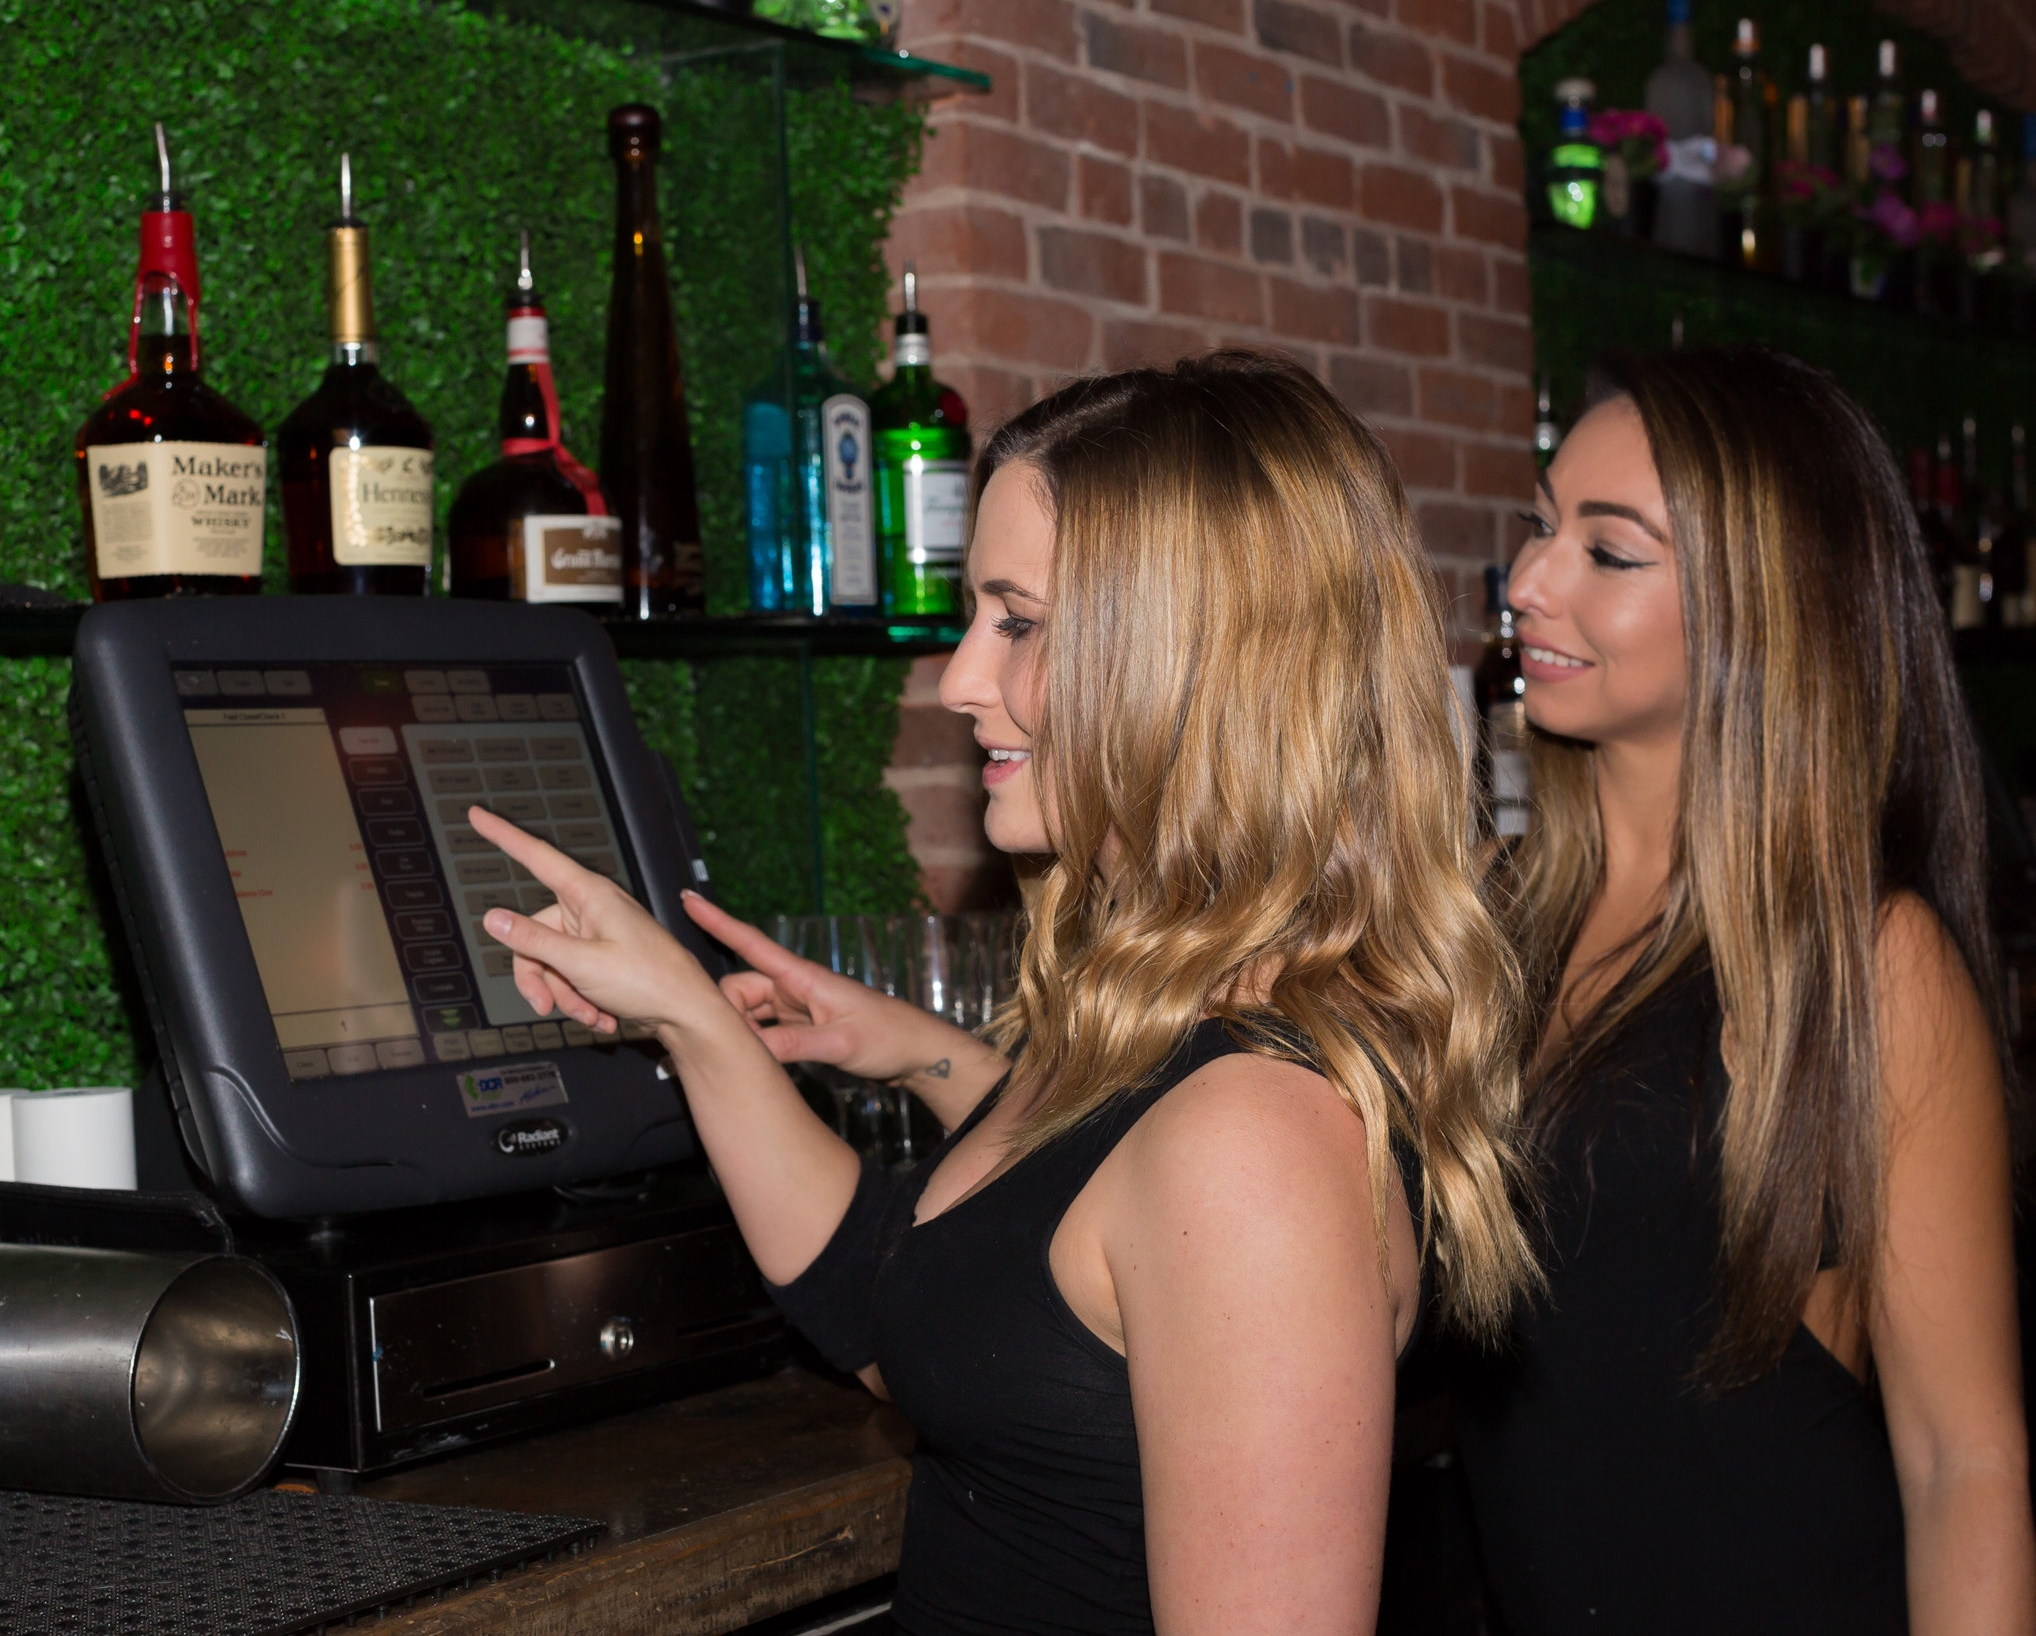 Every single drink made must be entered into the P.O.S system, its knowledge is just as important as the drinks and customer service. So why not be completely prepared to bartend?